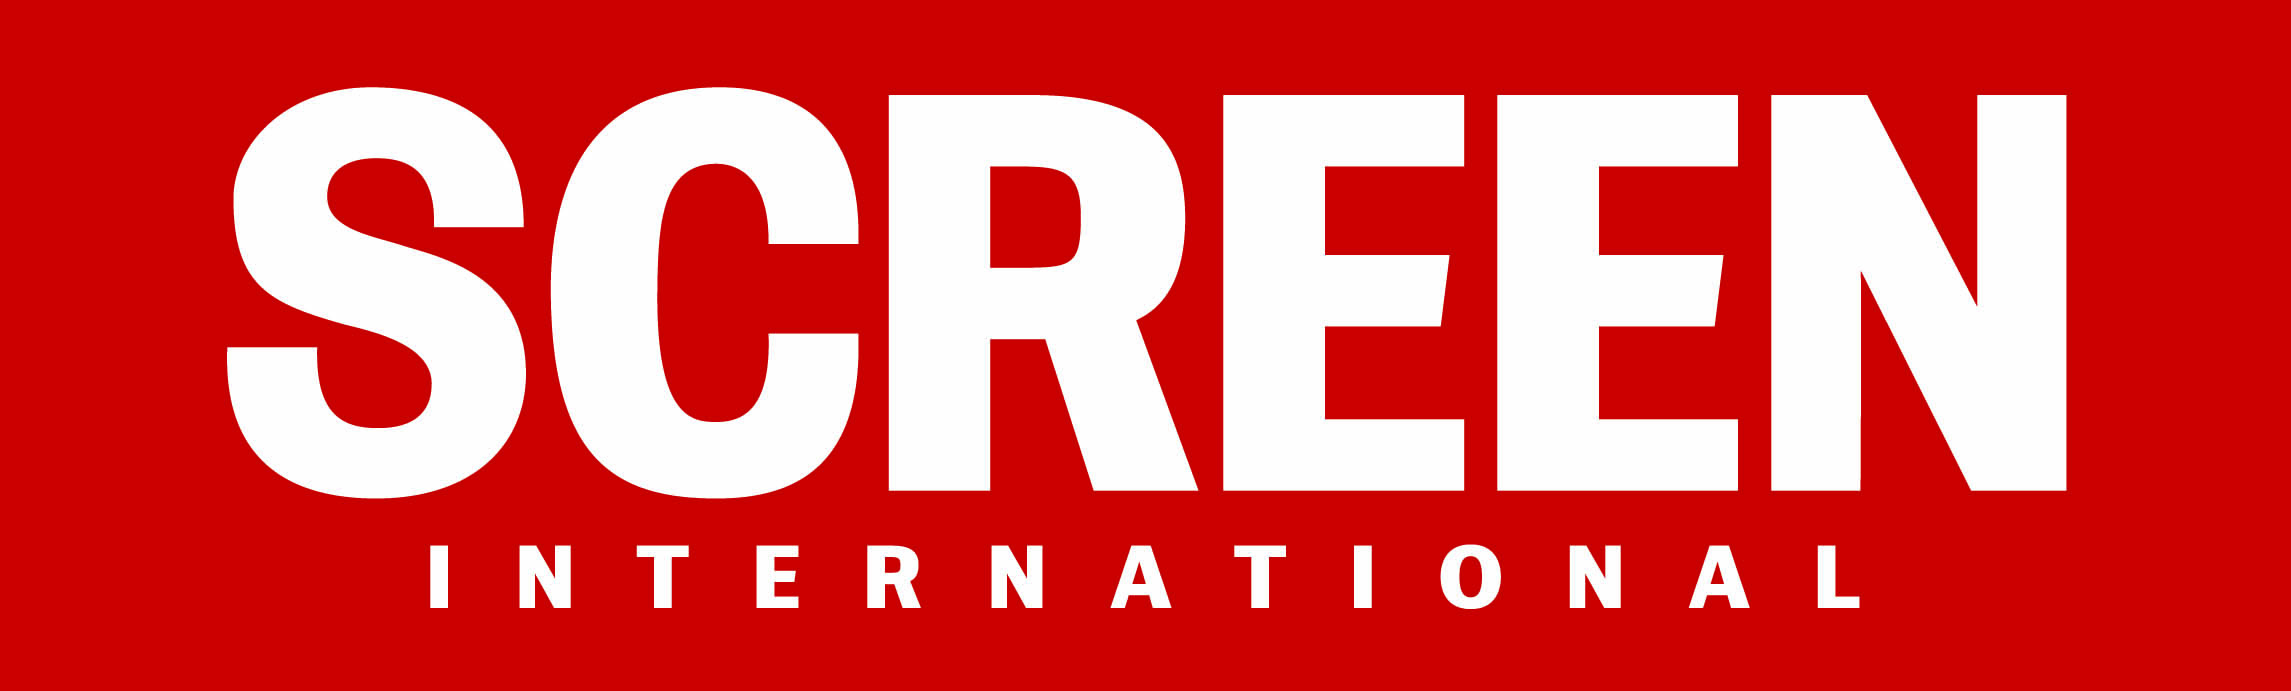 Screen International logo_red block